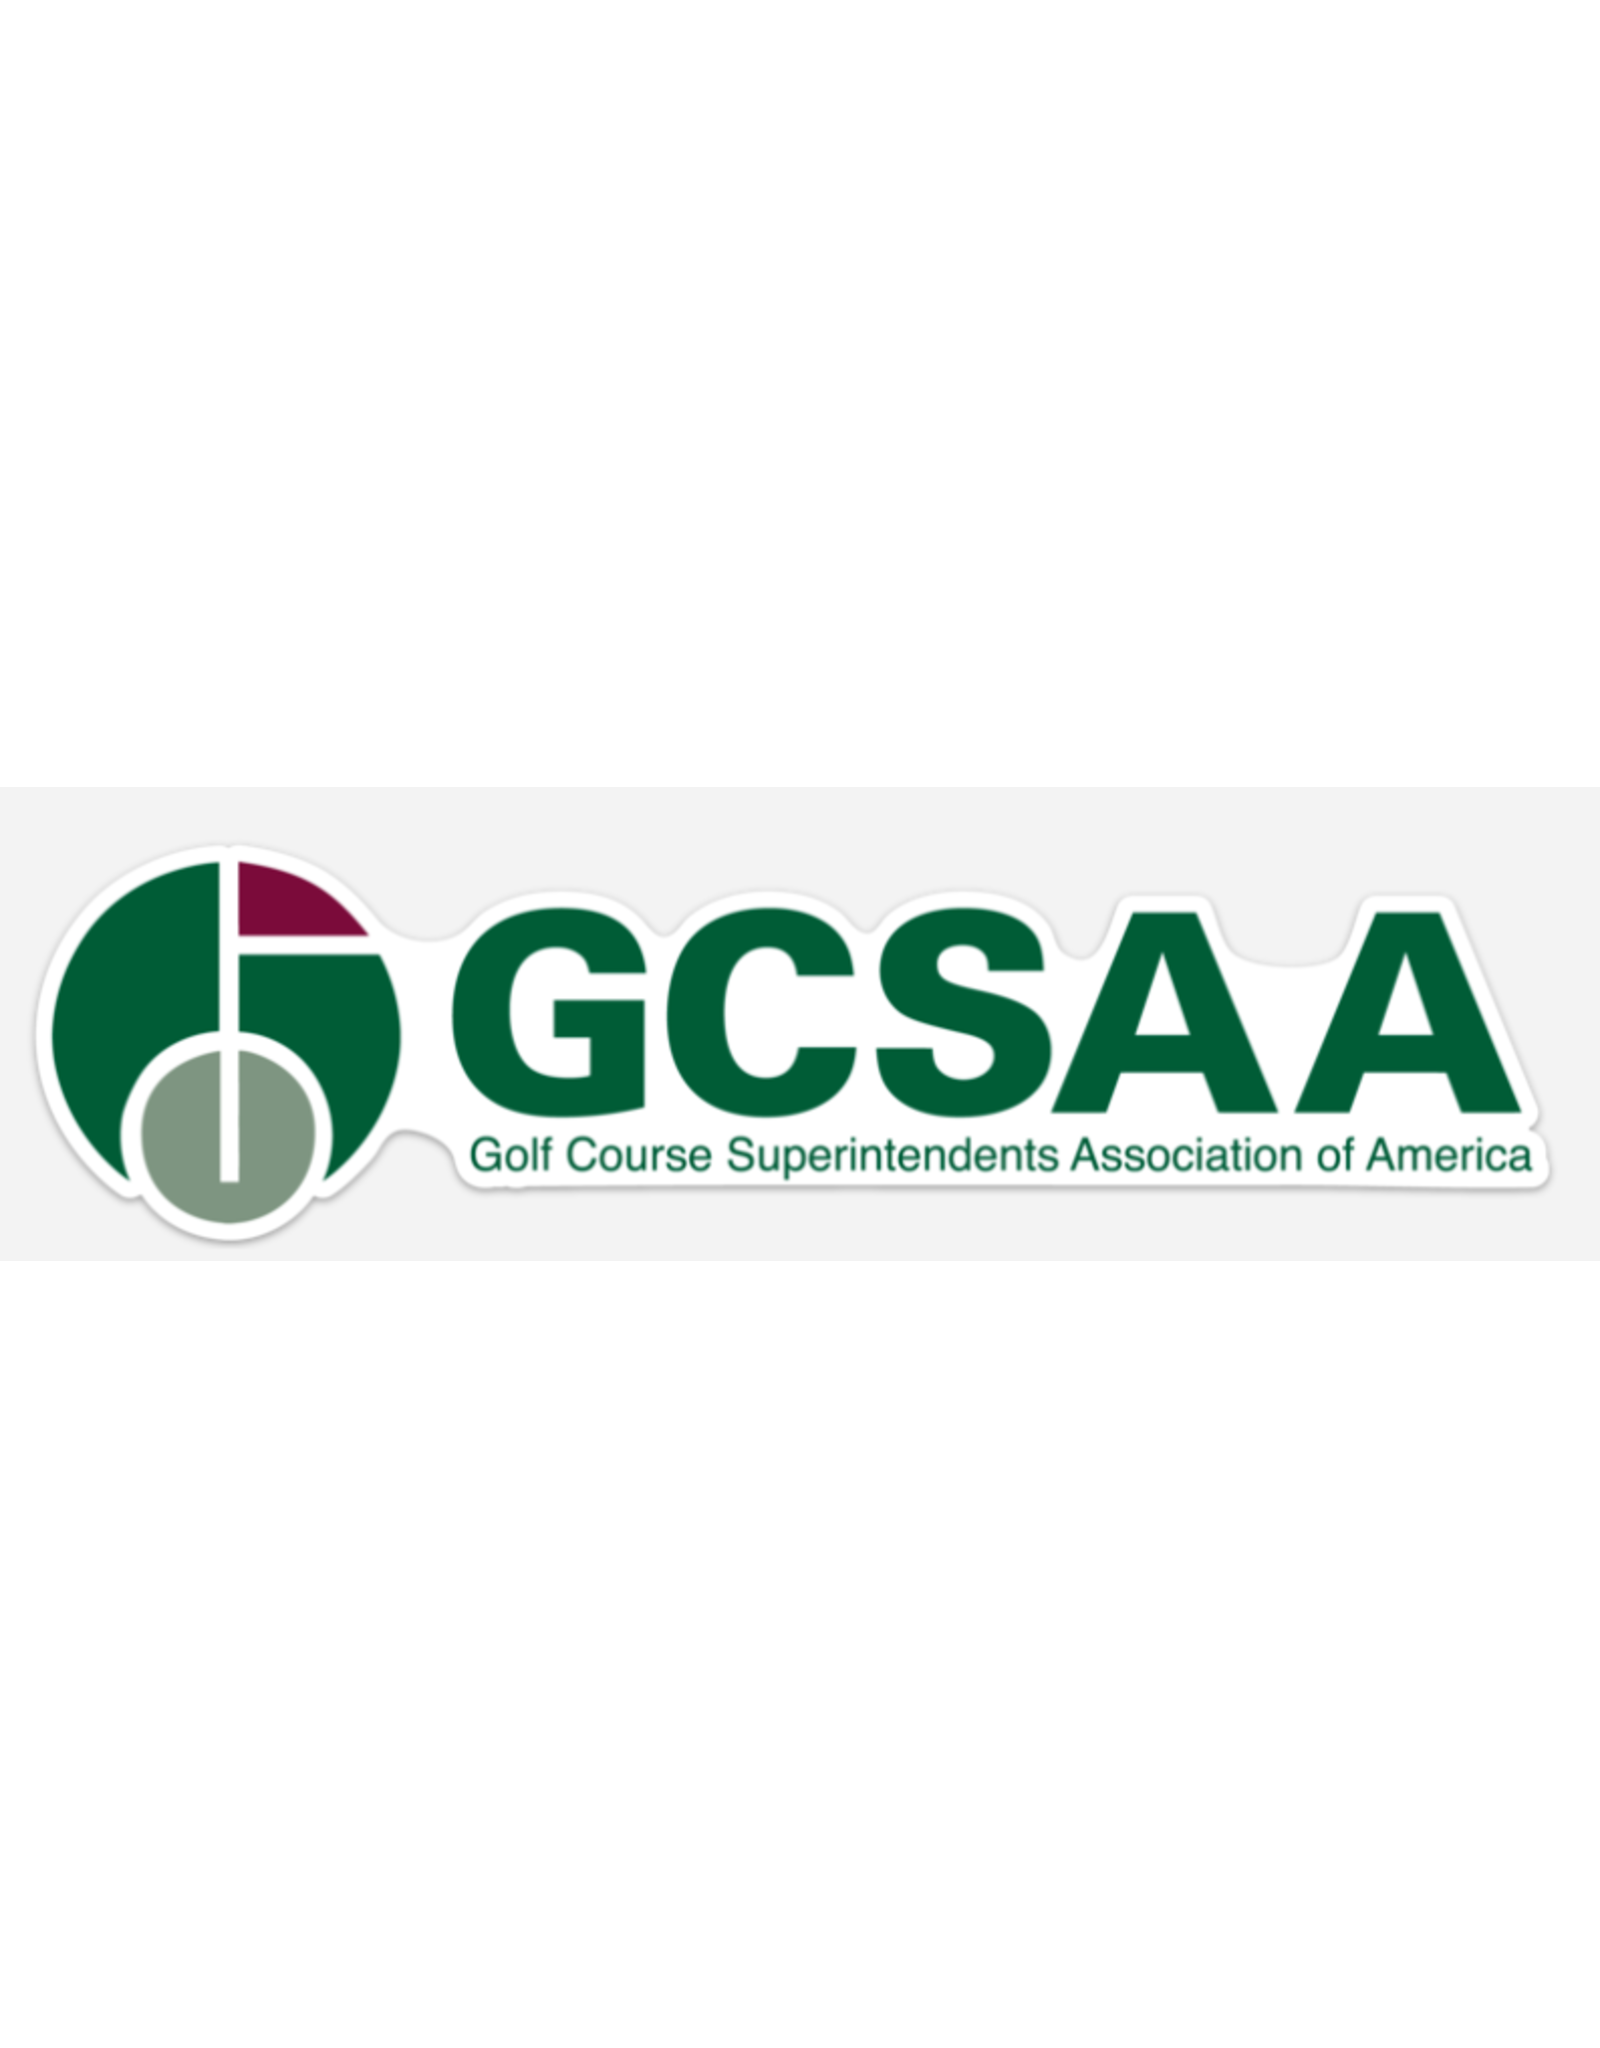 GCSAA Bumper Sticker